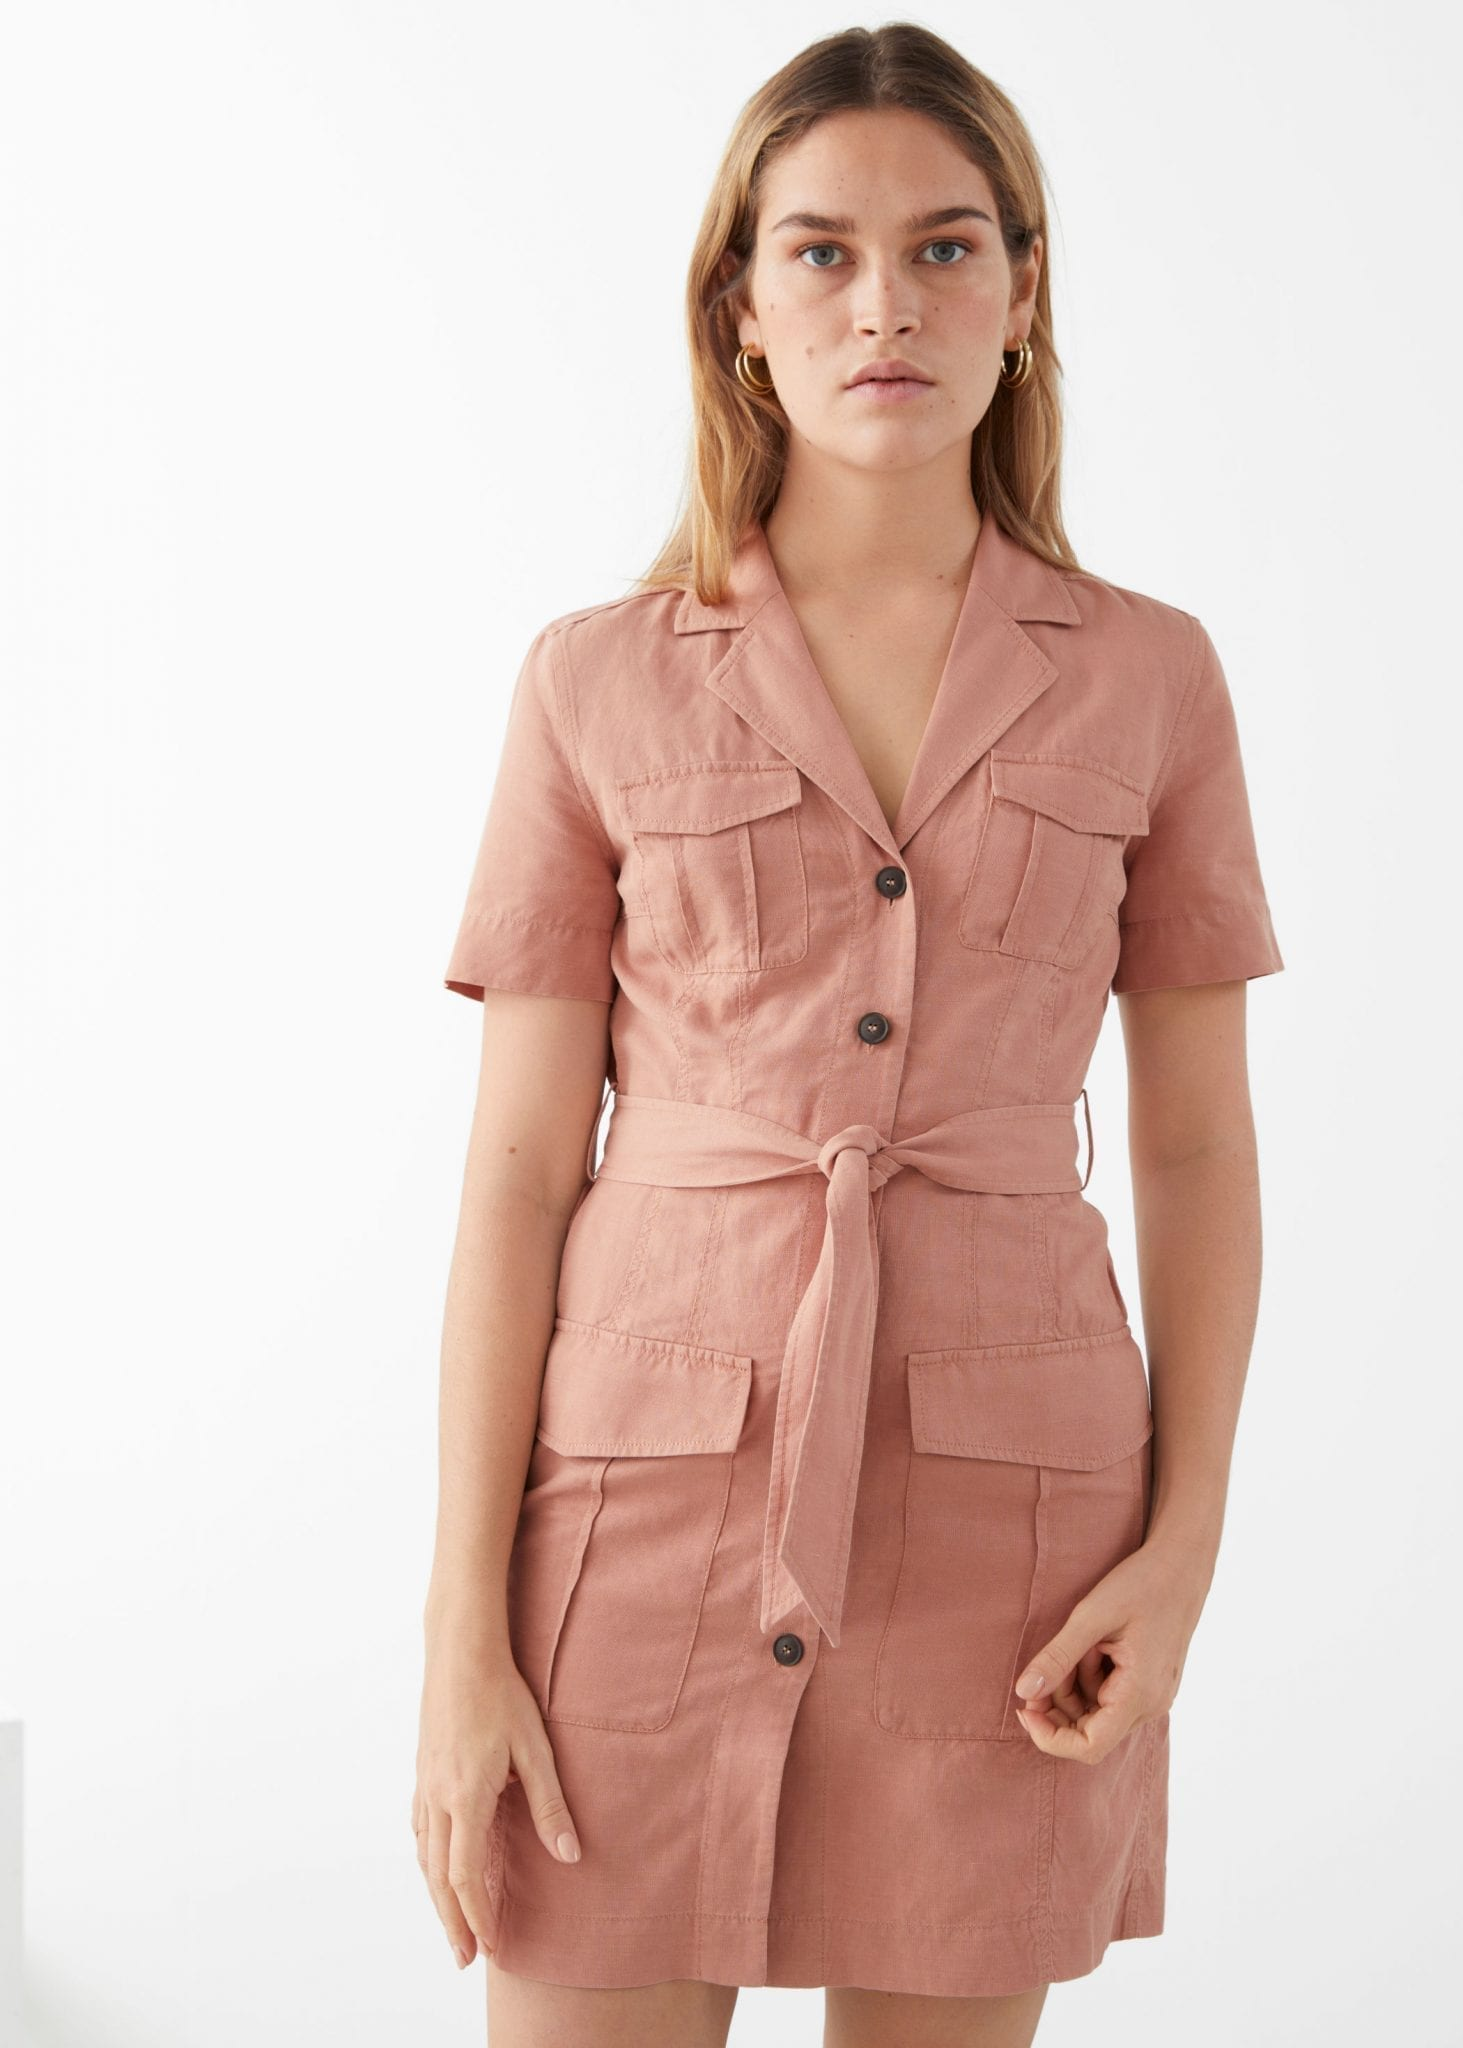 AND OTHER STORIES Belted Workwear Mini Dress